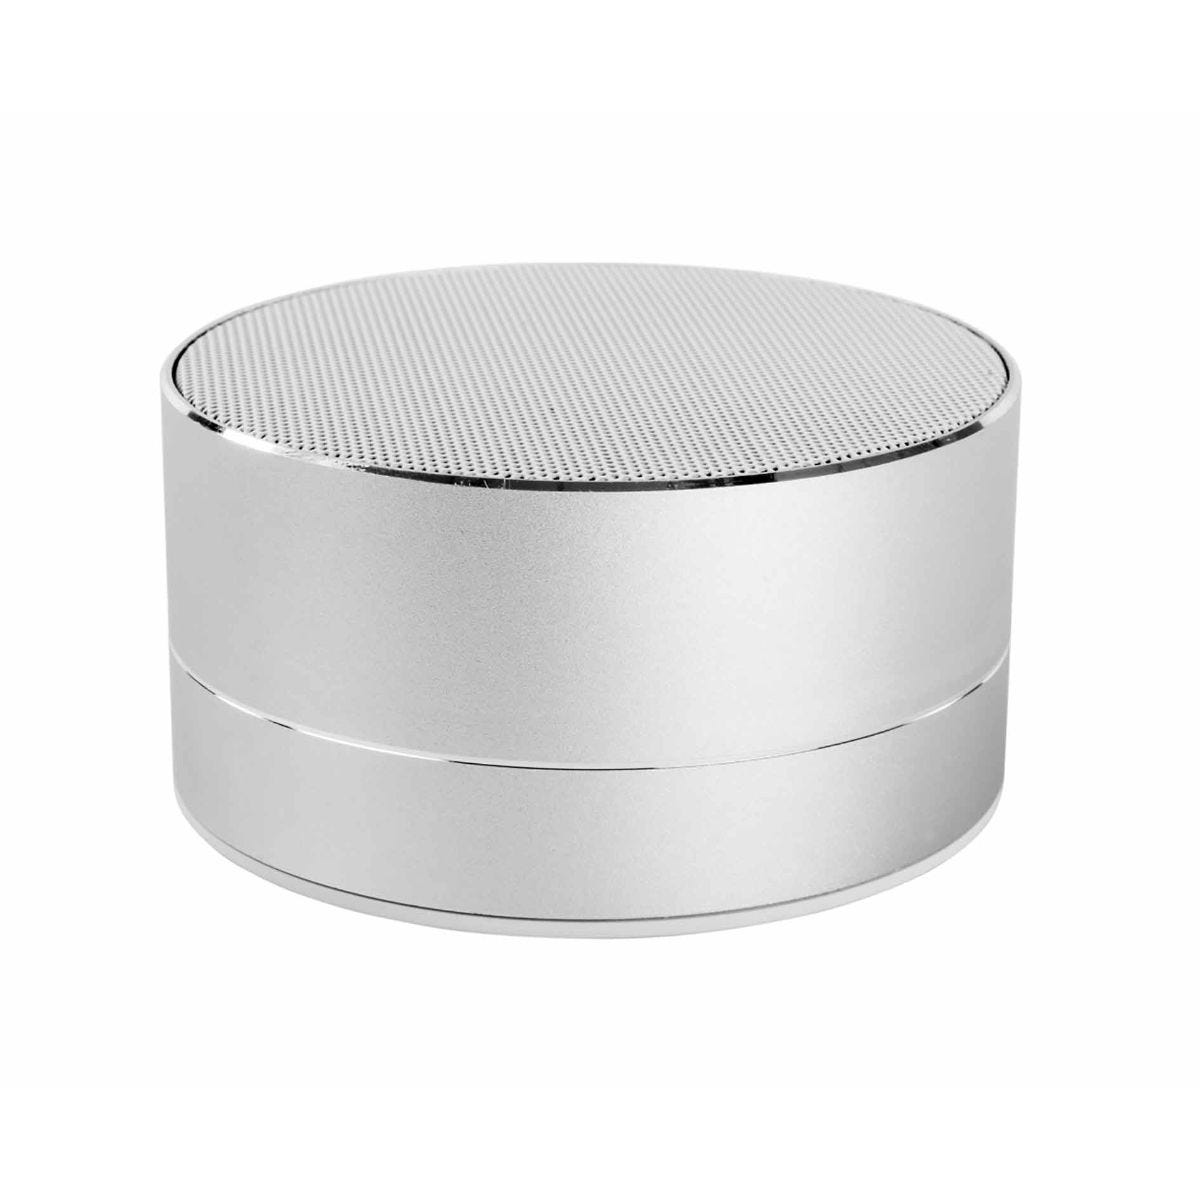 Image of Akai A58077 Mini DYNMX Bluetooth Speaker with Mic - Silver, Silver